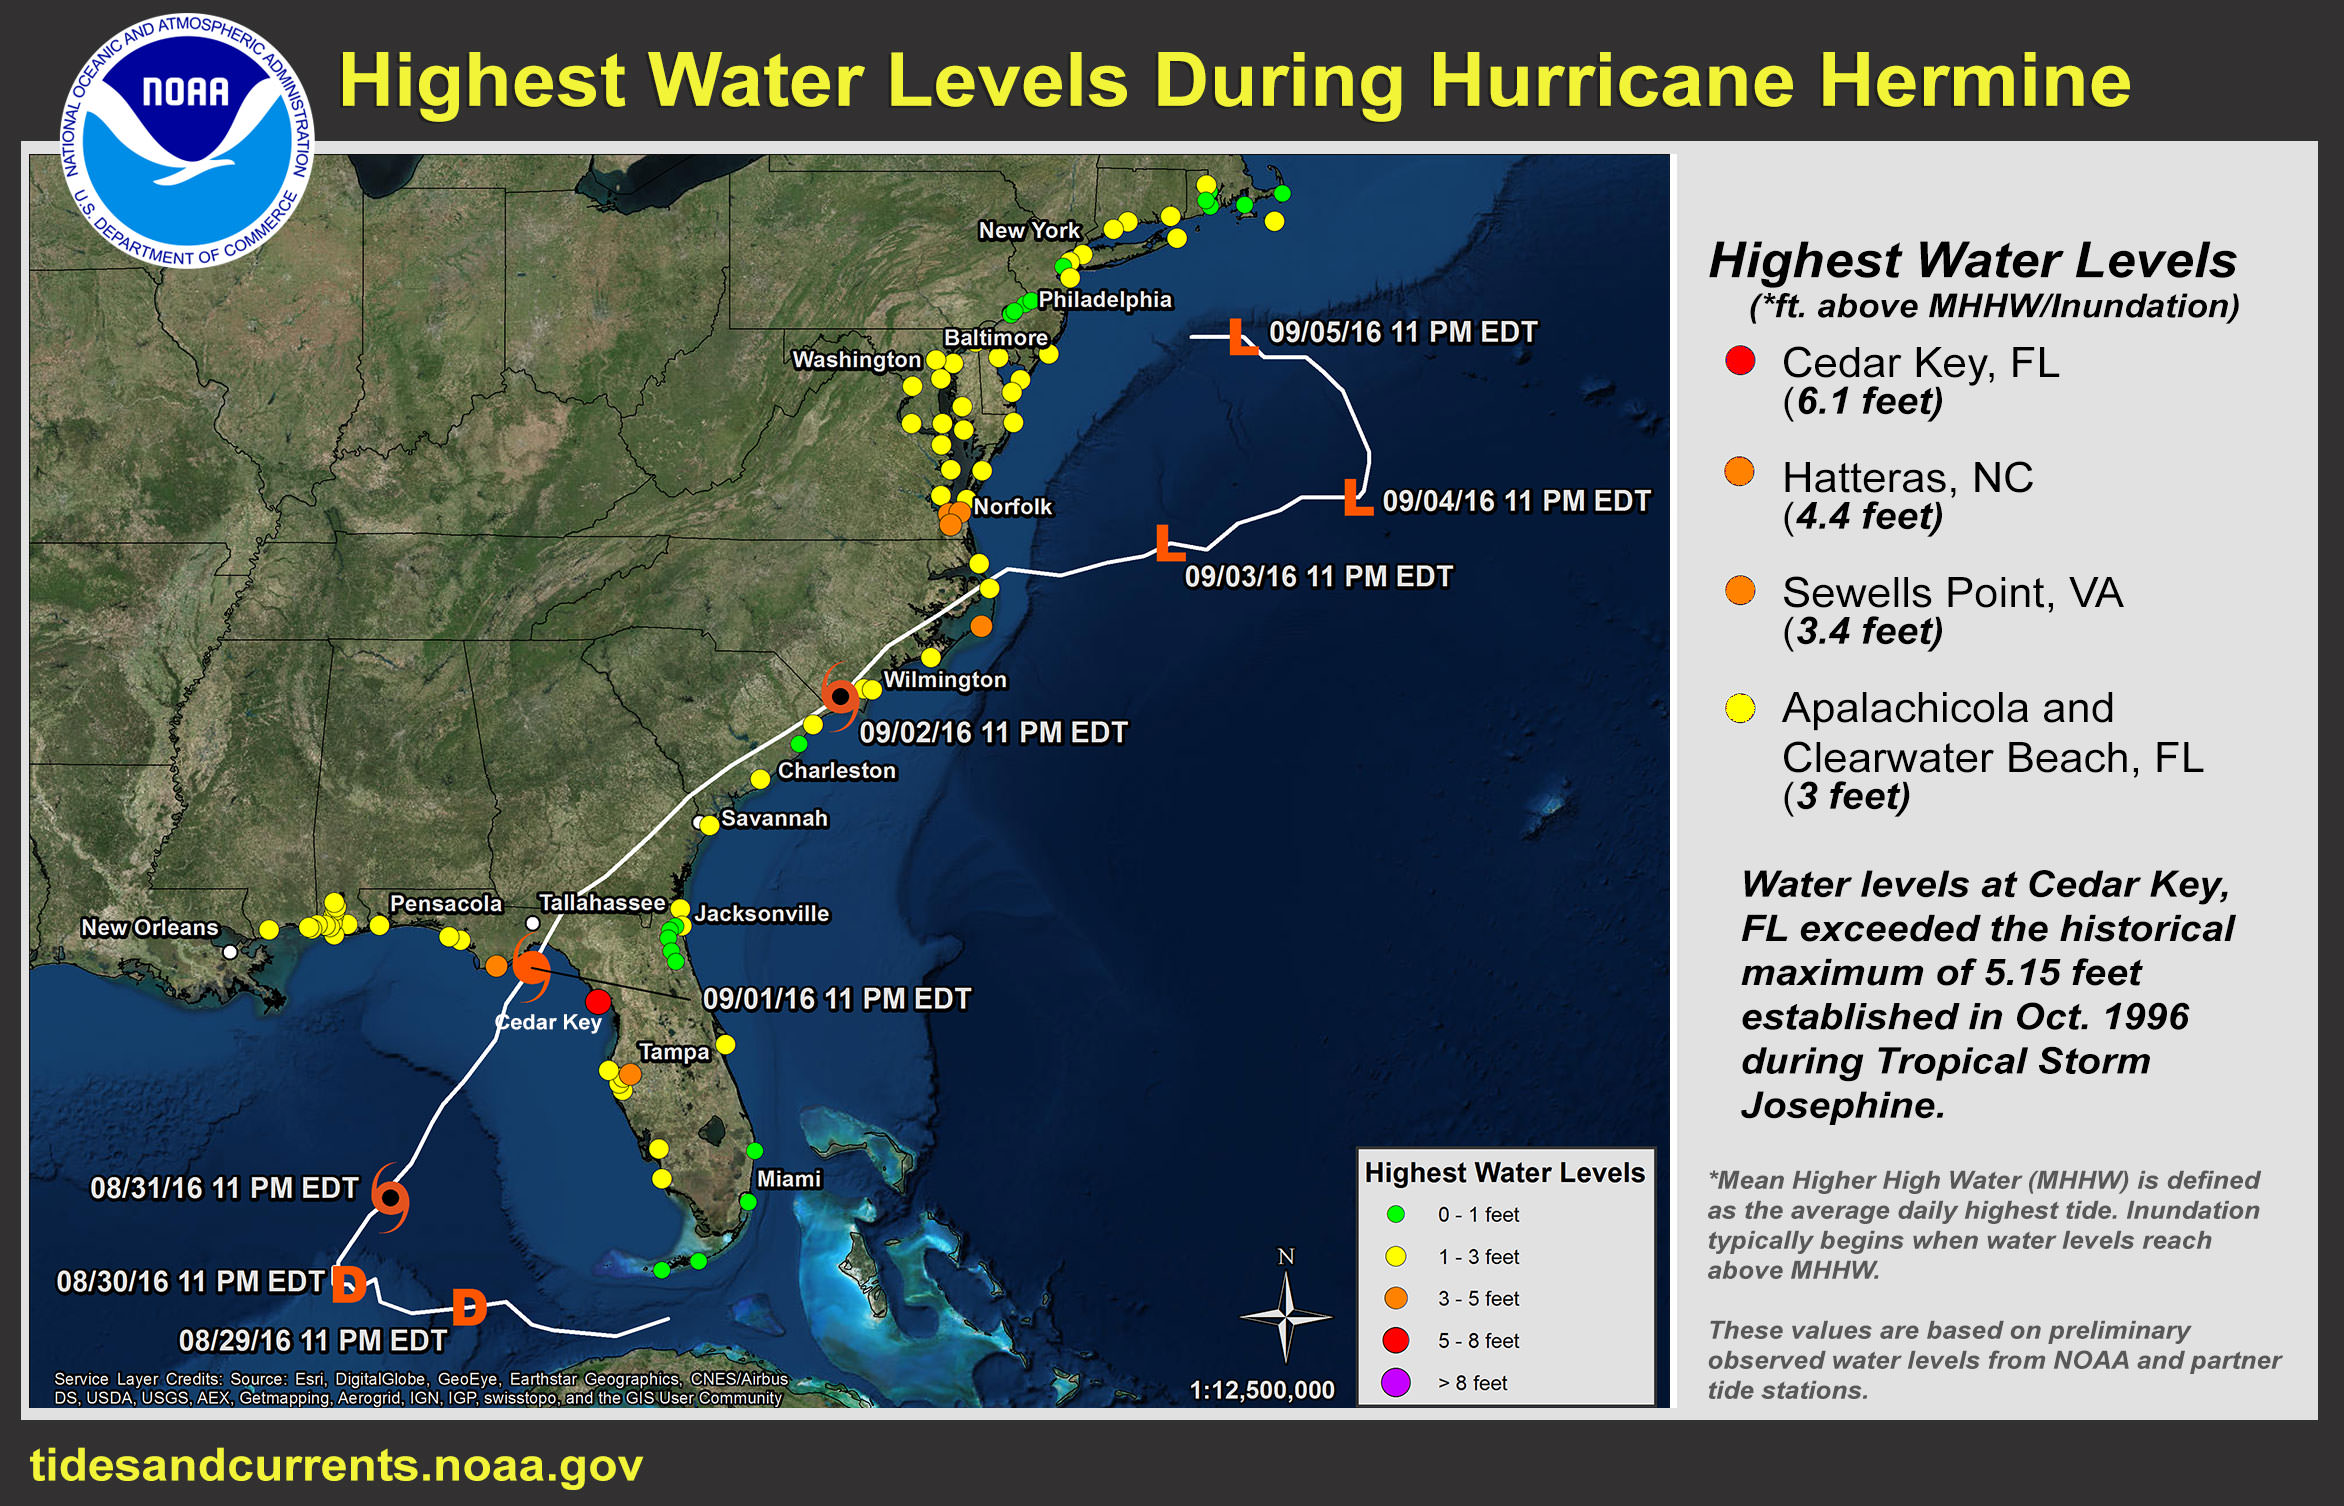 Hurricane Hermine high water level chart